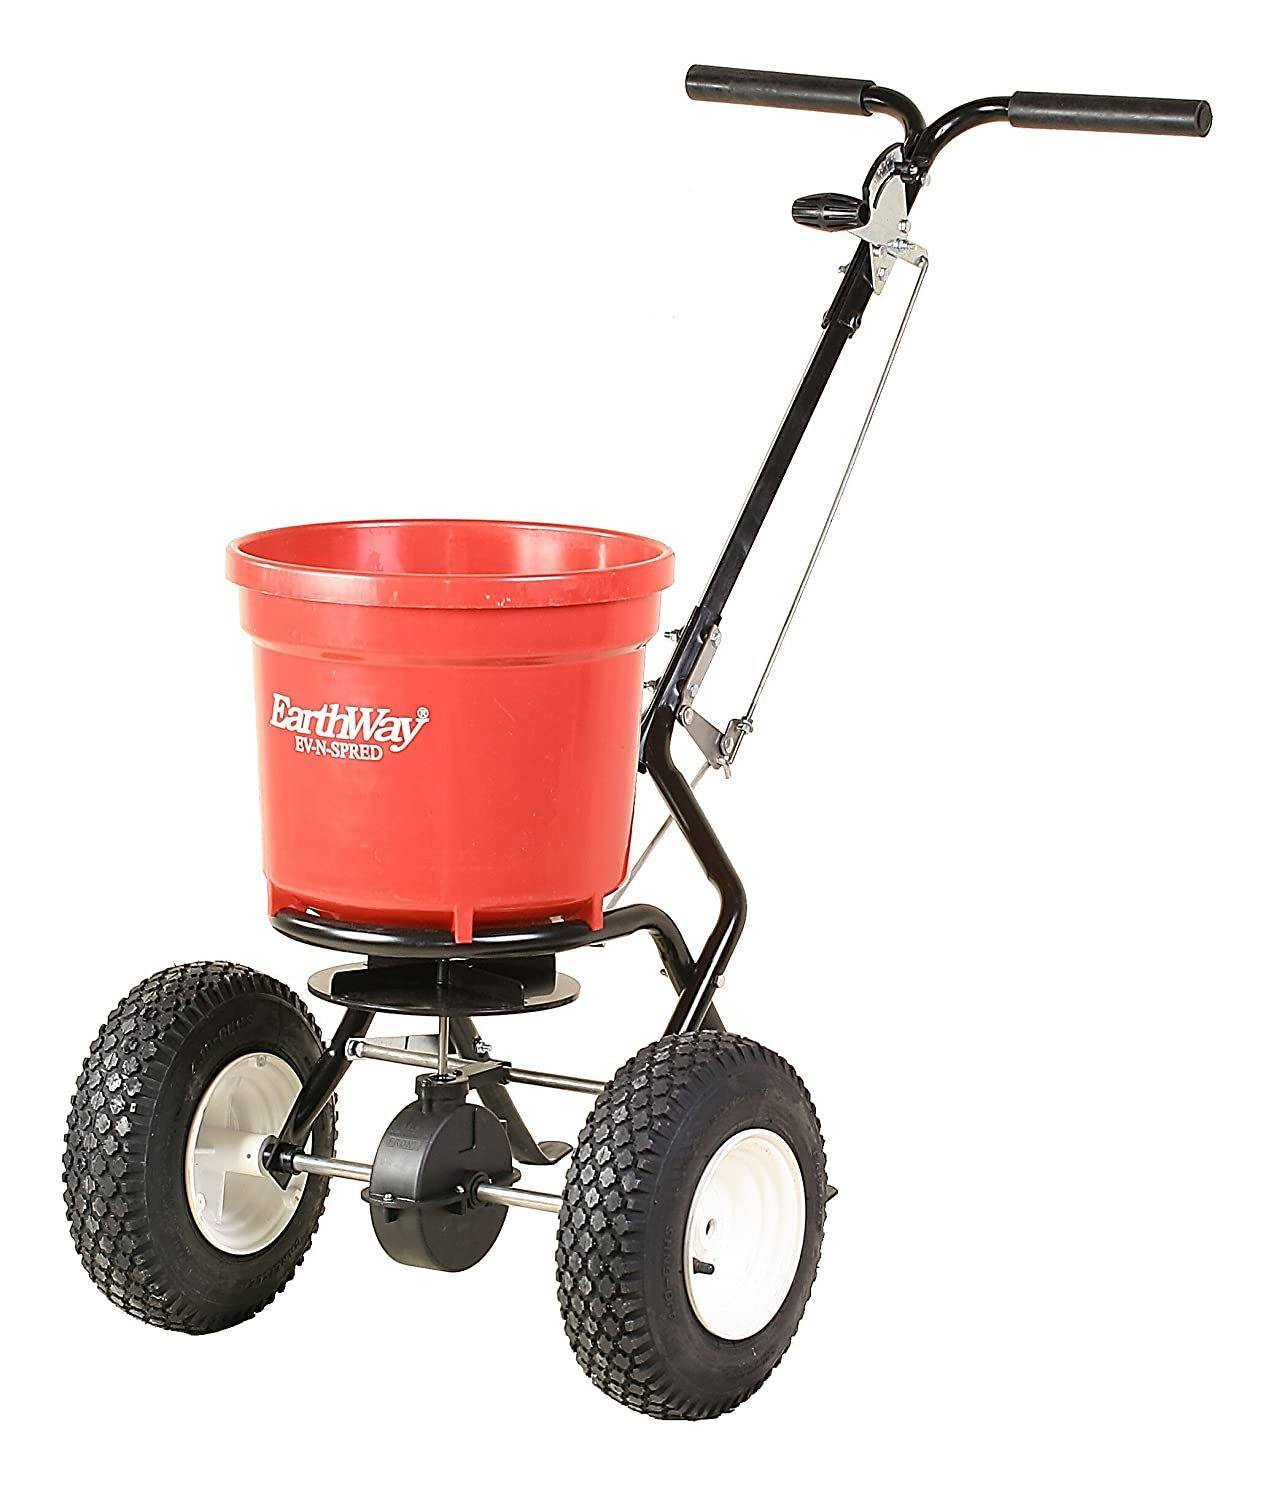 Best lawn fertilizer spreader in 2020